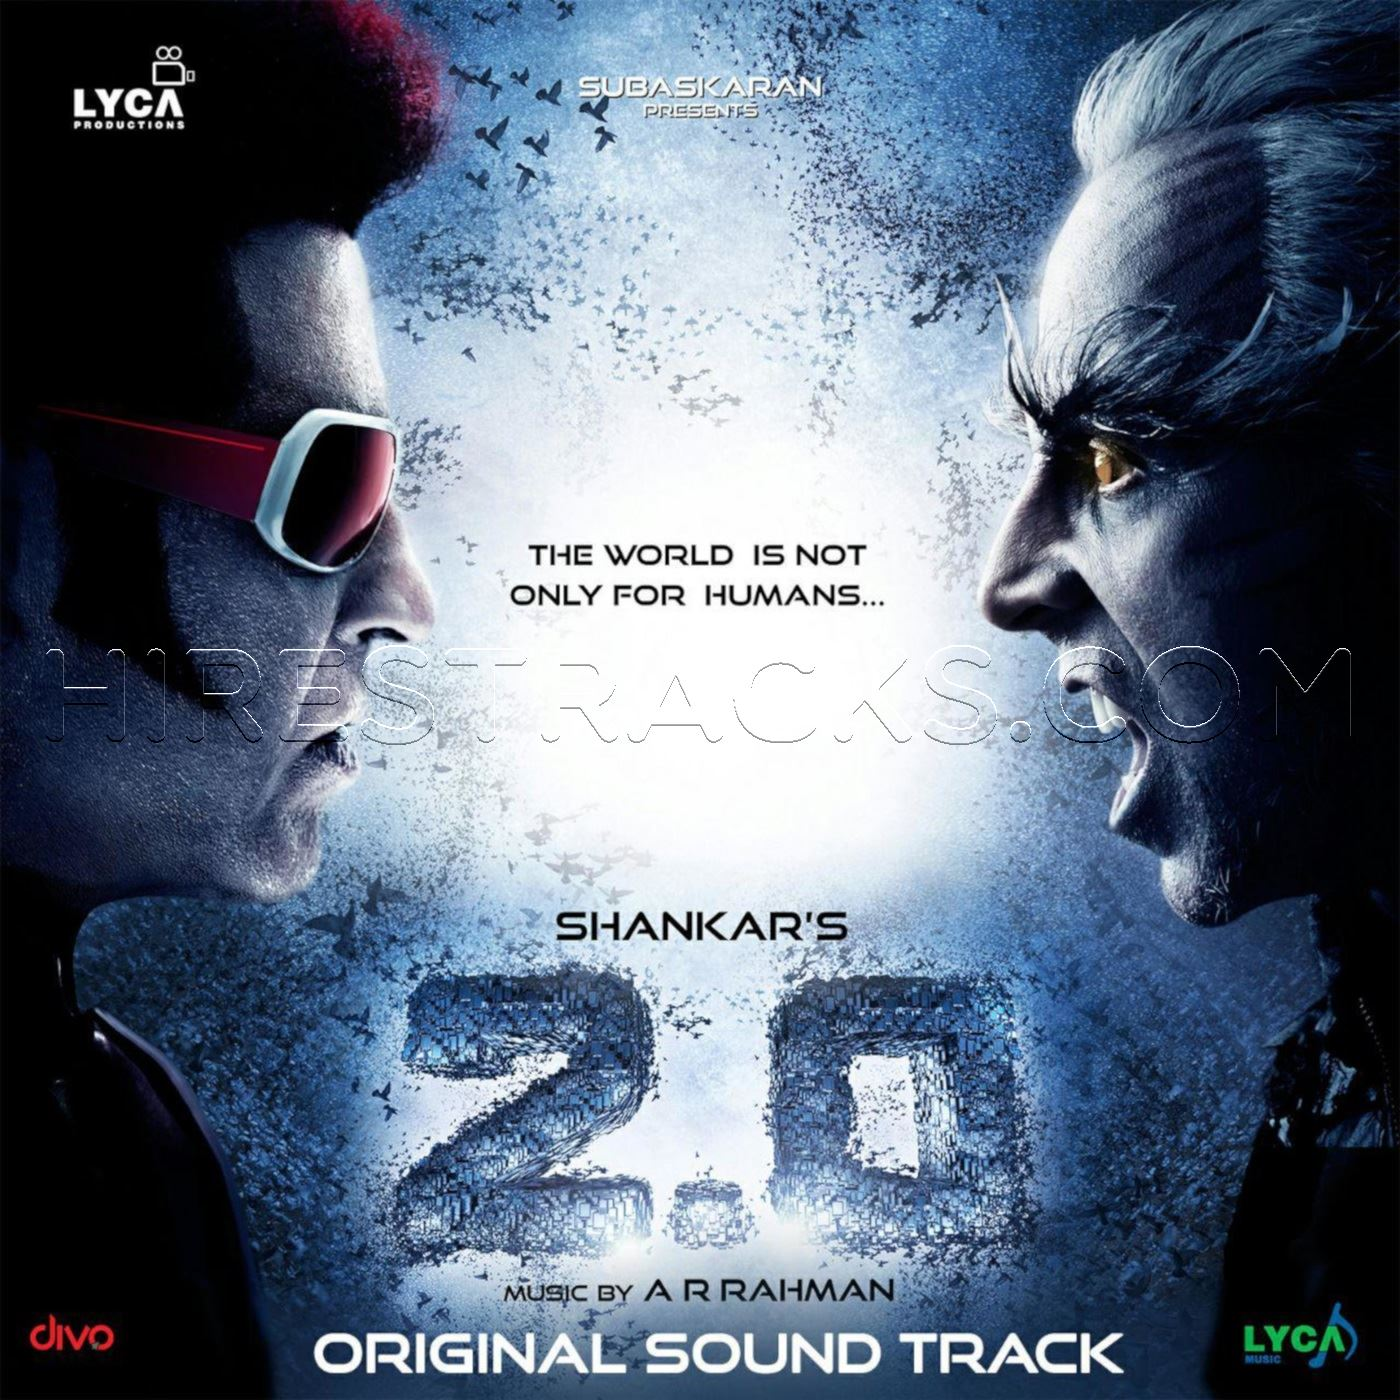 2.0 (Original Sound Track) (2019) (A.R. Rahman) (Lyca Music) [Digital-DL-FLAC]